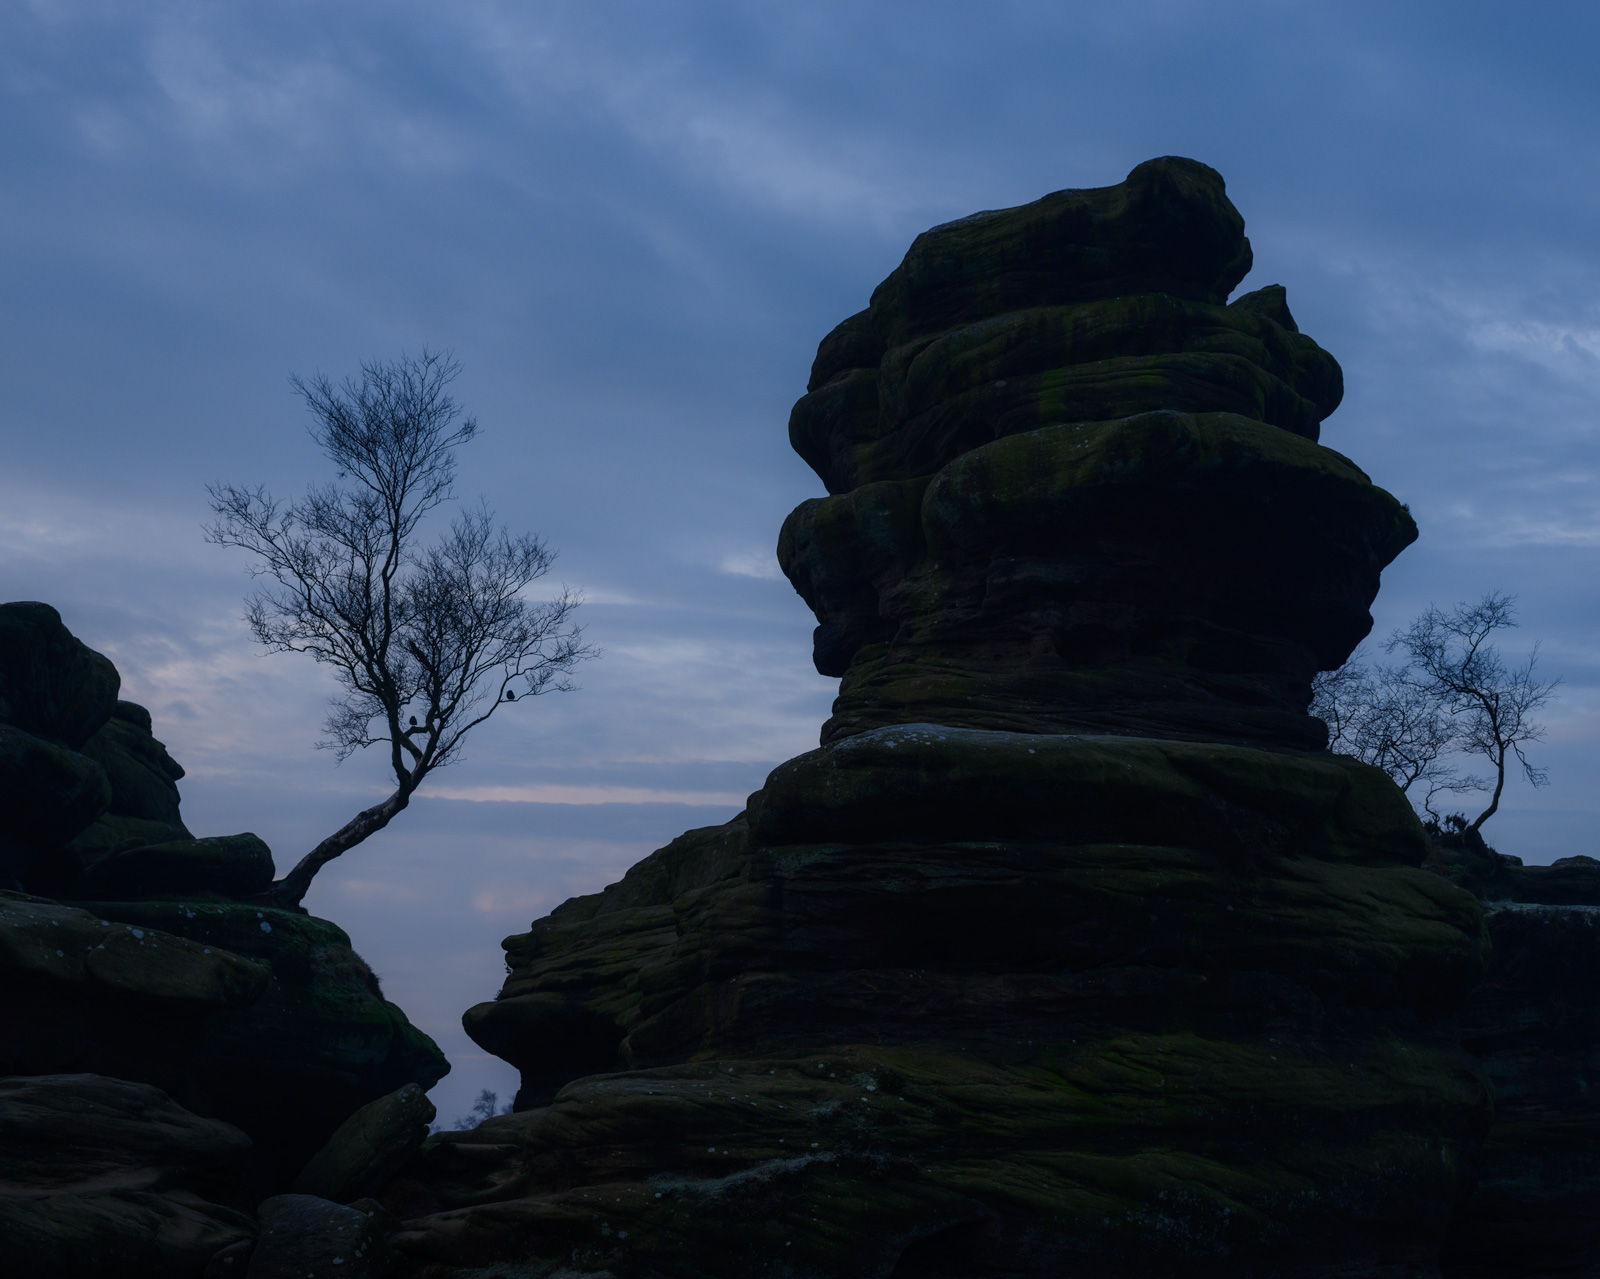 'That' tree and millions of faces in the rock - Brimham Rocks in silhouette